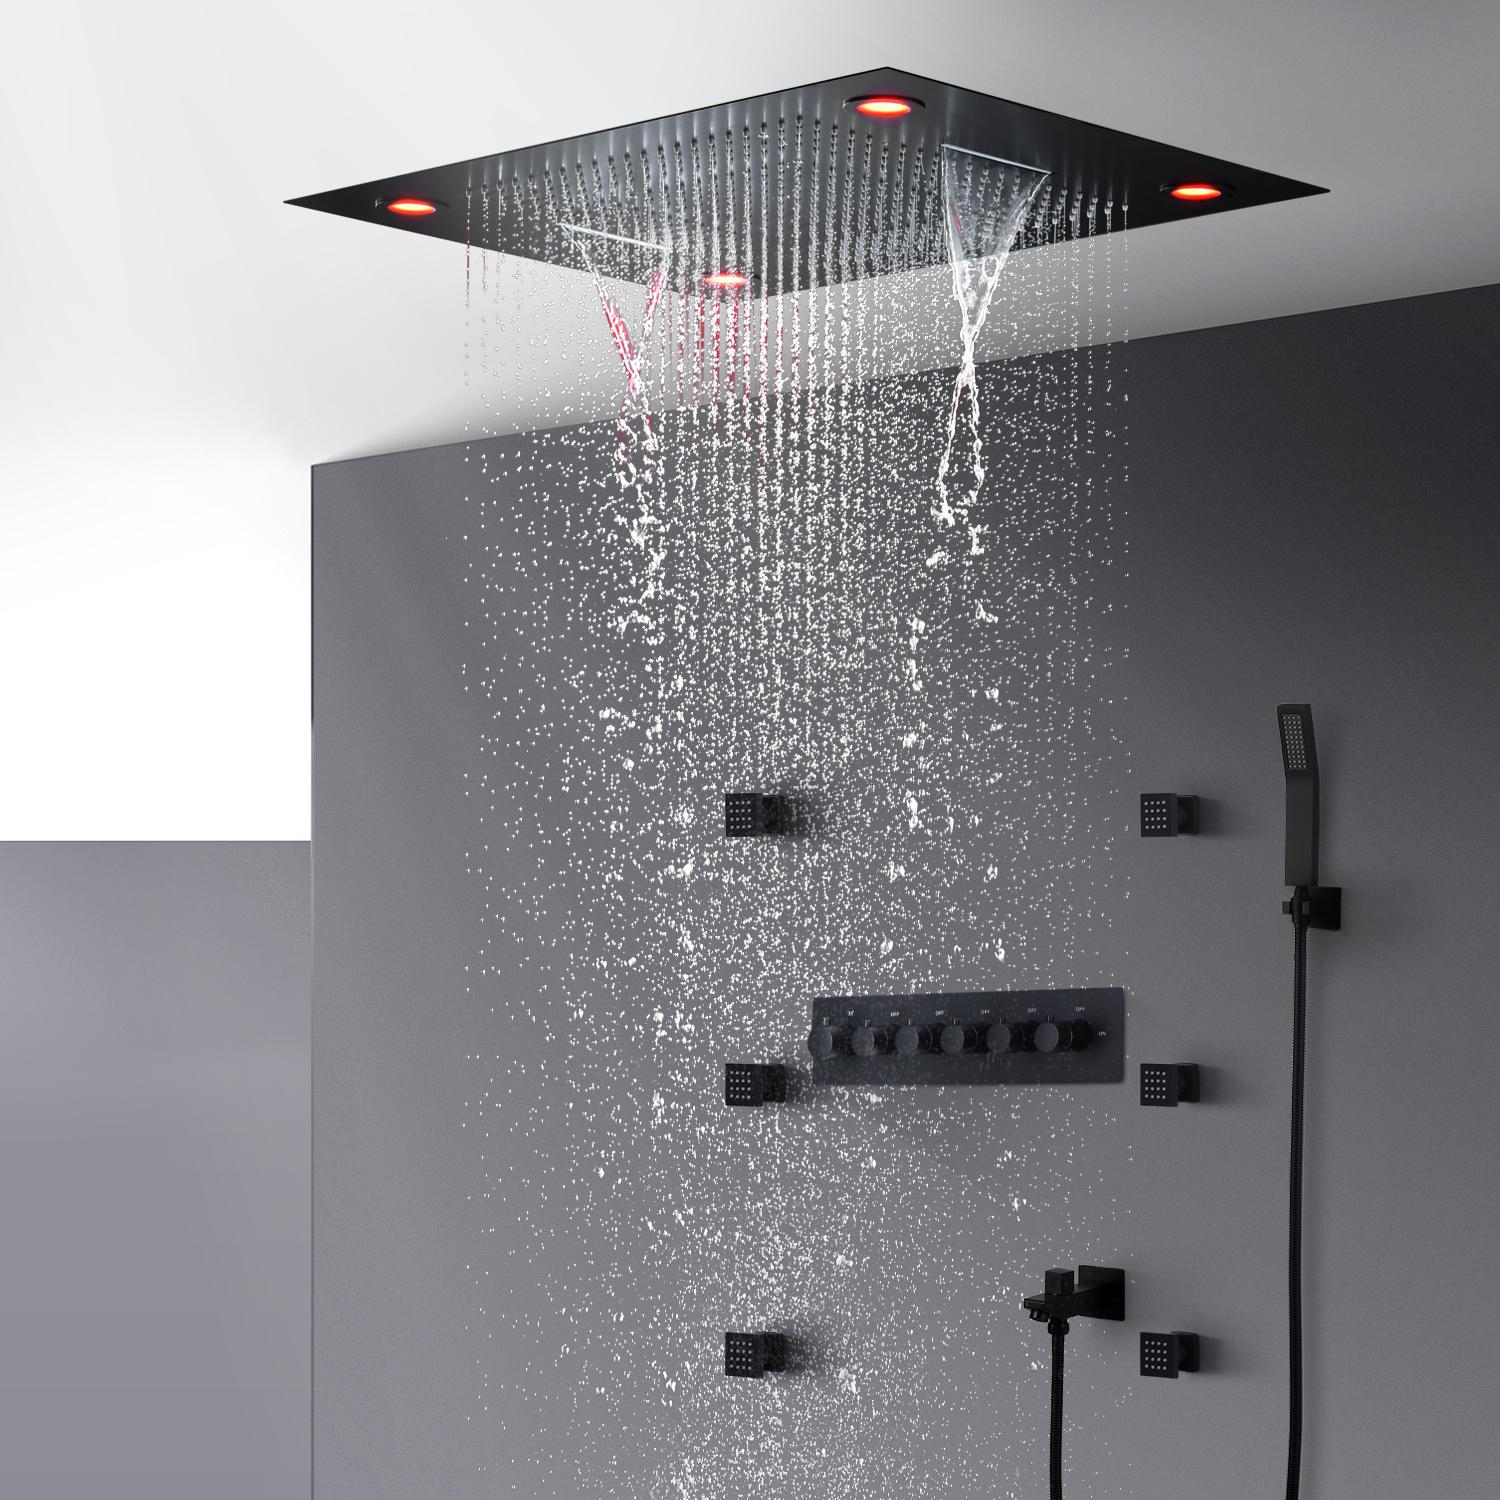 2019 Black Shower Set 2019 Modern Hotel Concealed Ceiling Shower Dual Rain Top Showerhead Waterfall Body Jets 2 Inch Massage Bath From Jmhm 1668 35